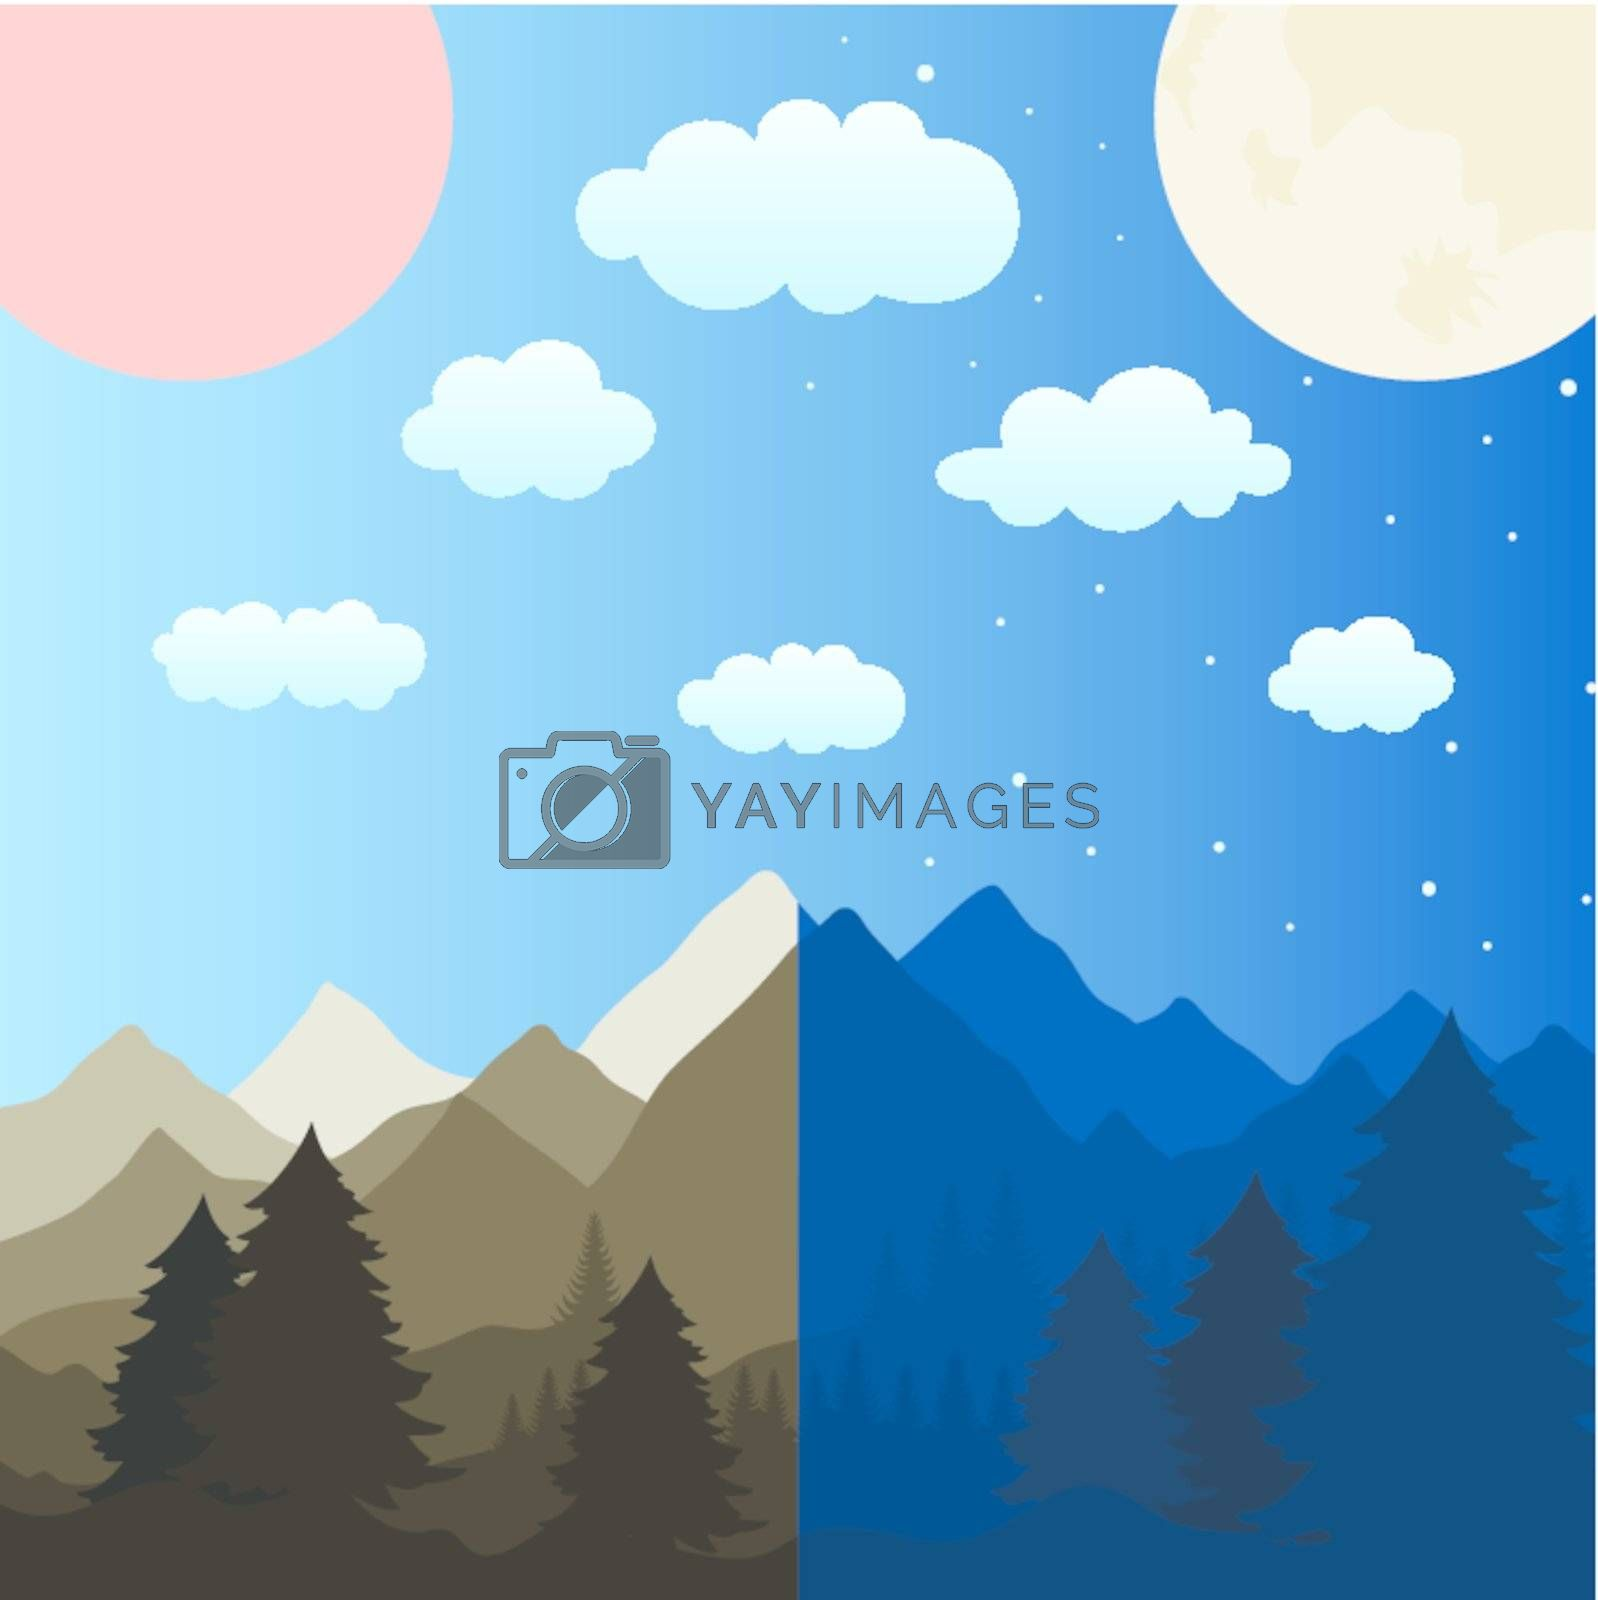 Royalty free image of Mountains by aleksander1